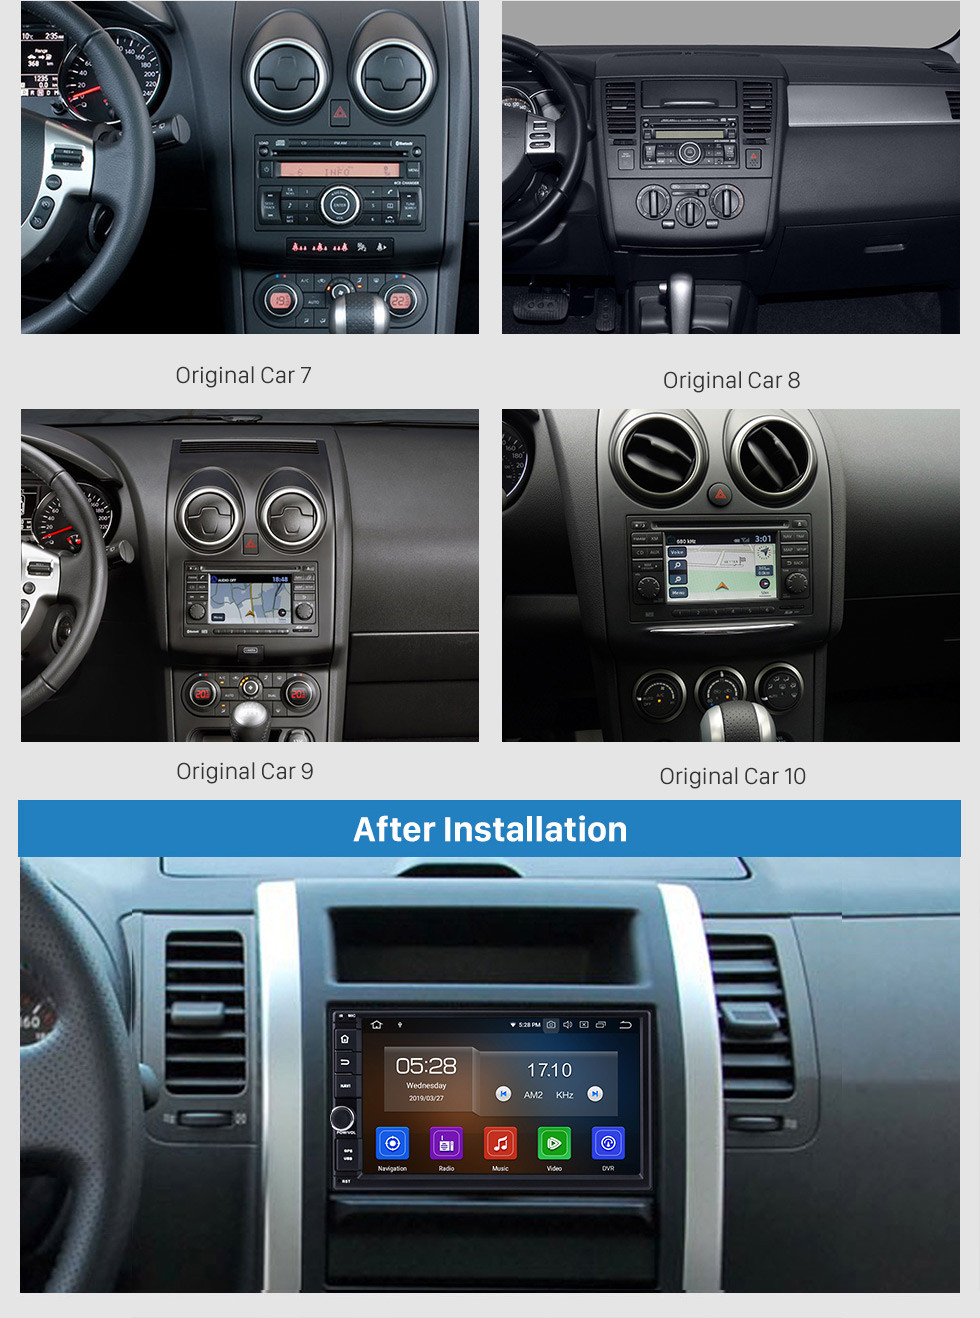 Seicane OEM Android 9.0 2005-2010 Kia optima magentis lotze Radio Upgrade with Aftermarket GPS Navigation DVD Player Car Stereo  Touch Screen WiFi 3G Bluetooth OBD2 AUX Mirror Link Backup Camera